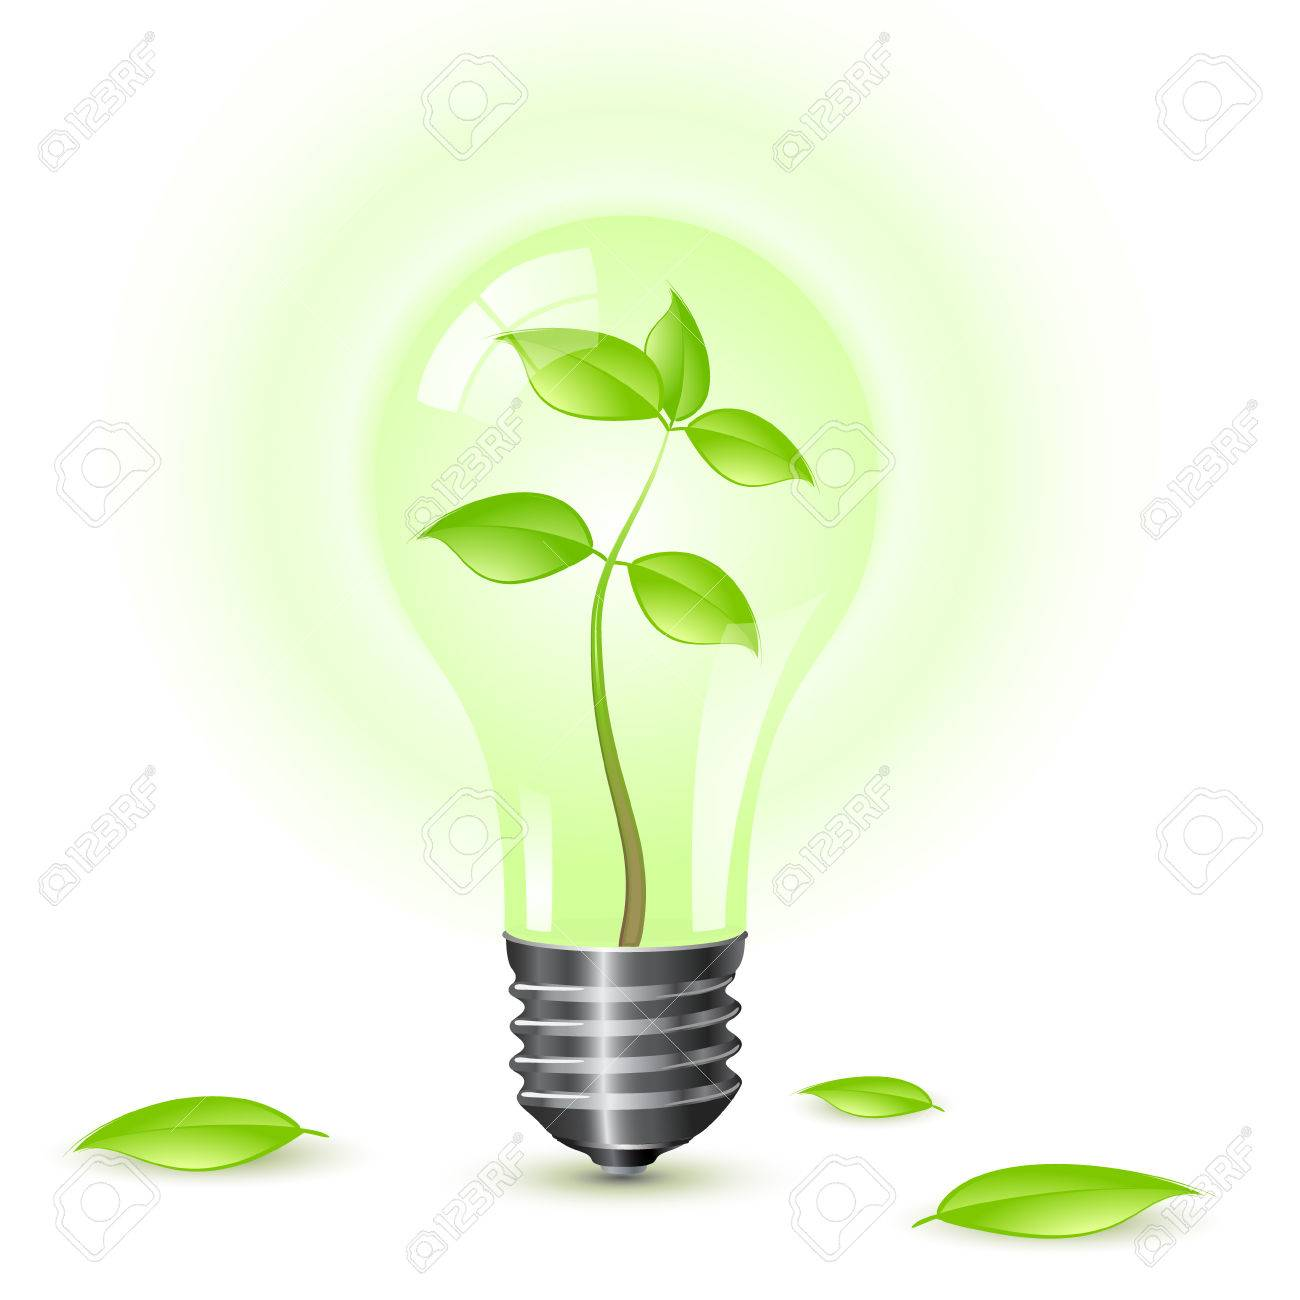 Environmental light bulb isolated over a white background. Stock Vector - 6568968